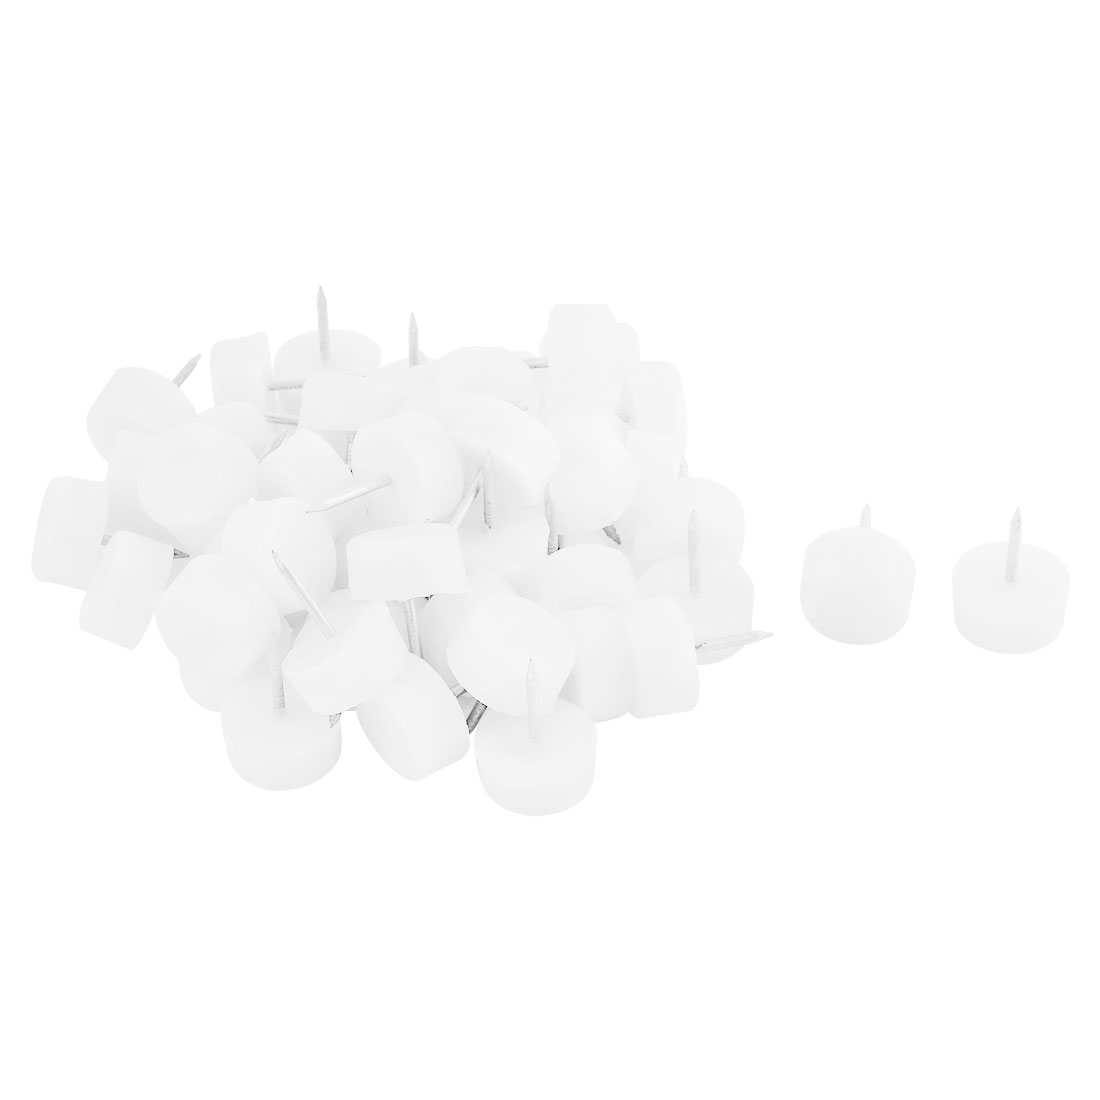 Household Plastic Floor Protector Chair Table Furniture Legs Glide Nail White 10 x 20mm 50pcs